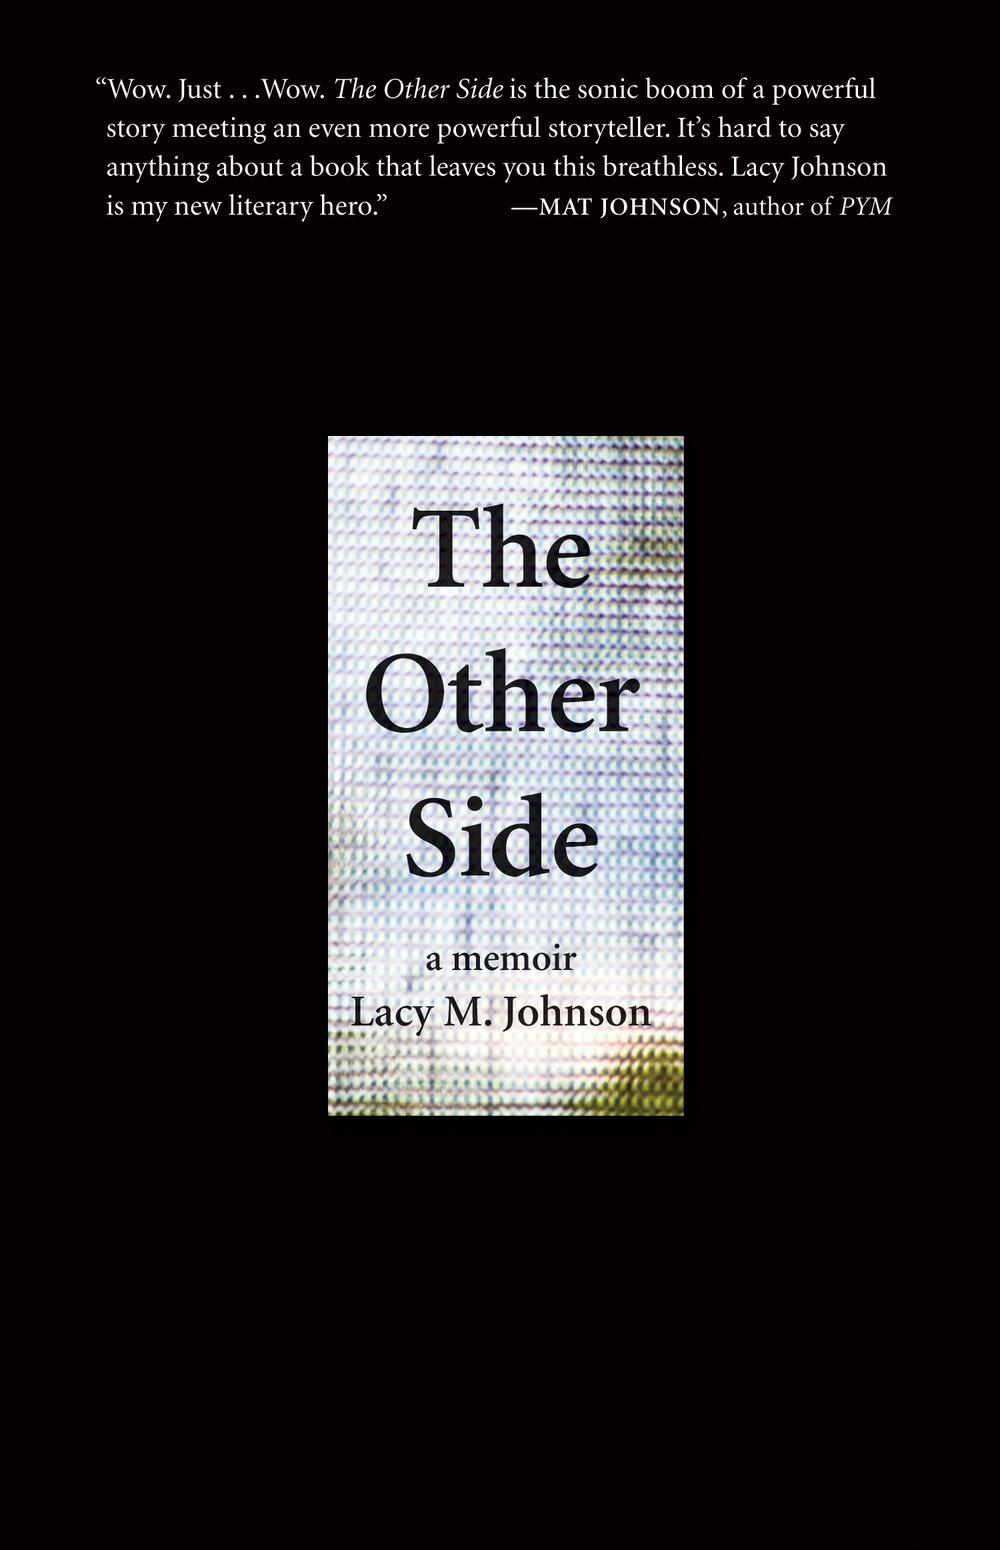 The Other Side Cover RGB.jpeg